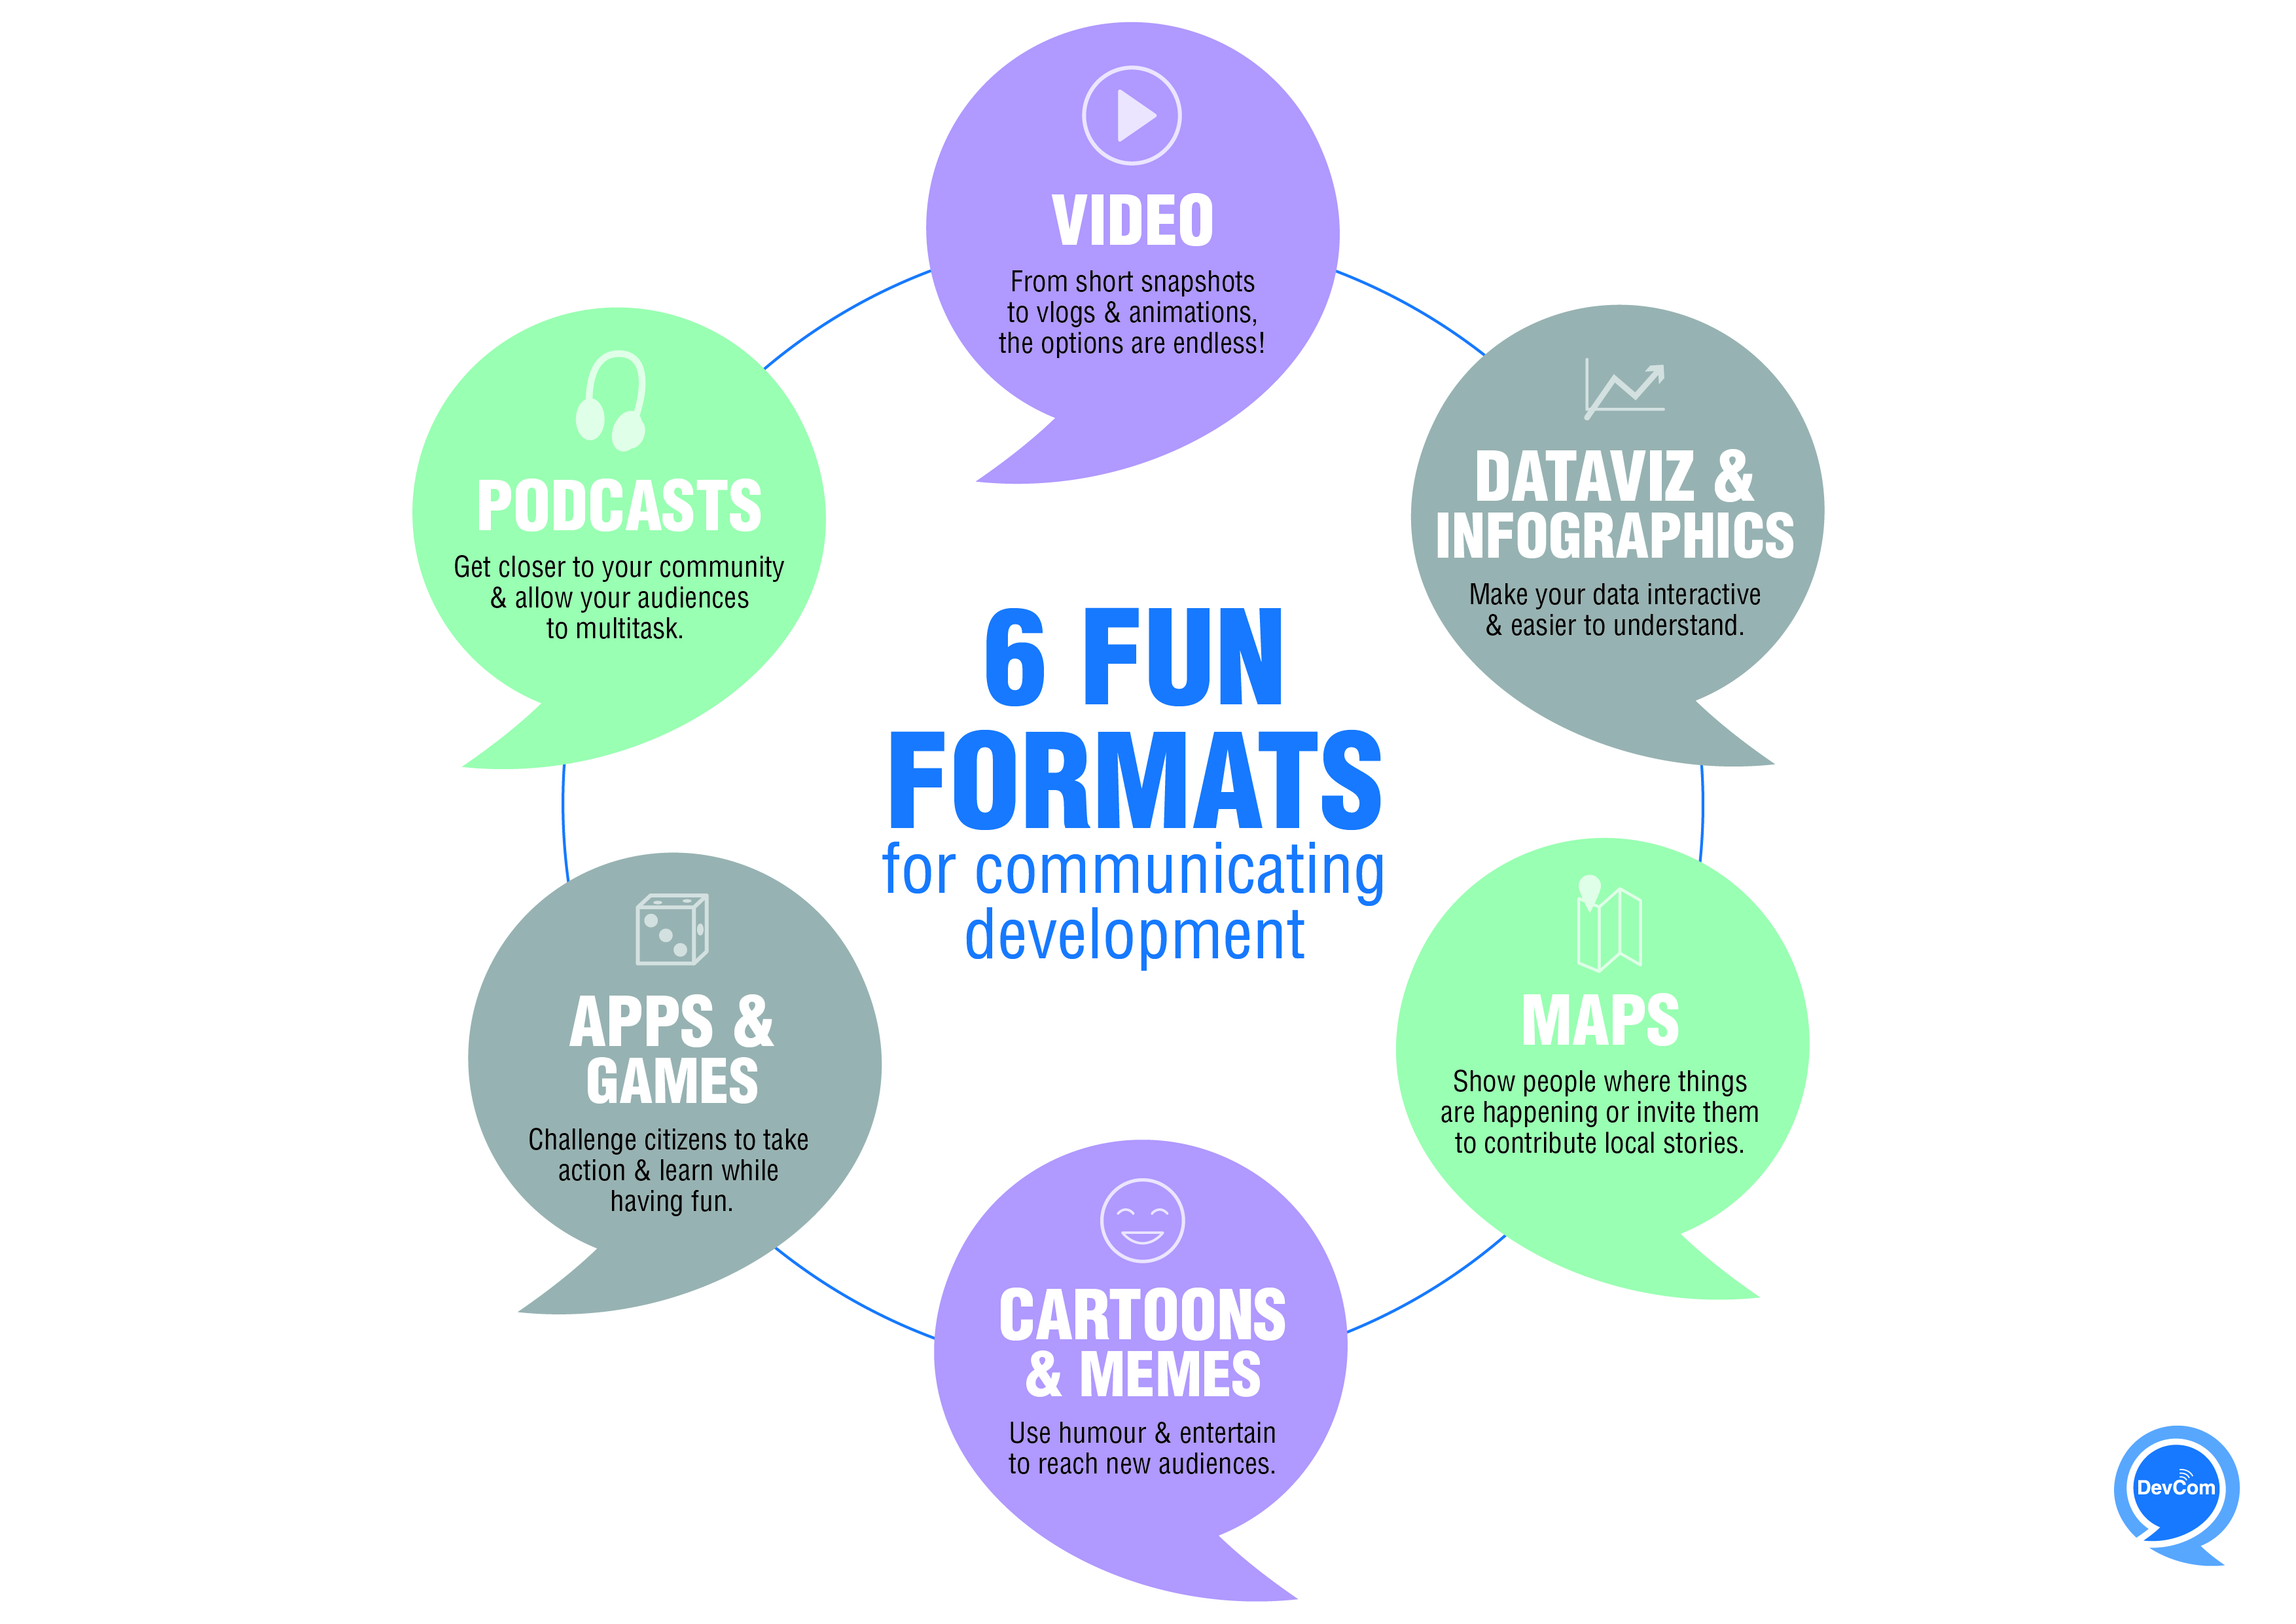 Infographic - 6 fun formats for communicating development